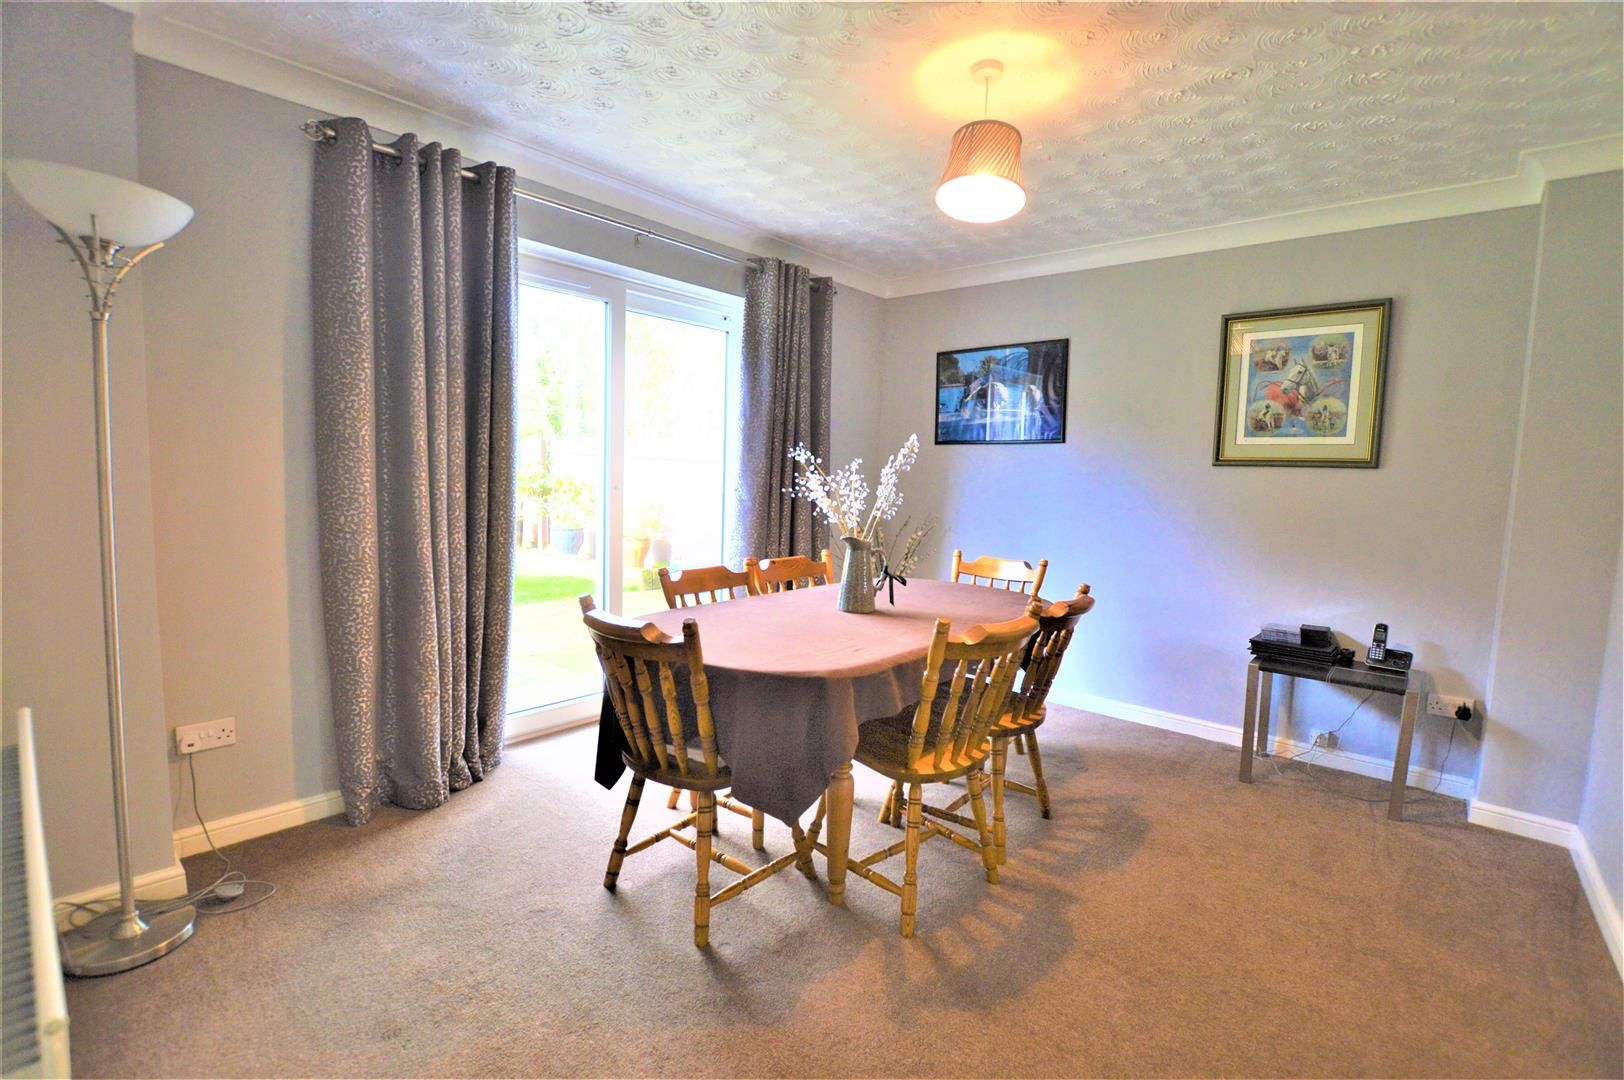 5 bed detached for sale in Leominster  - Property Image 5